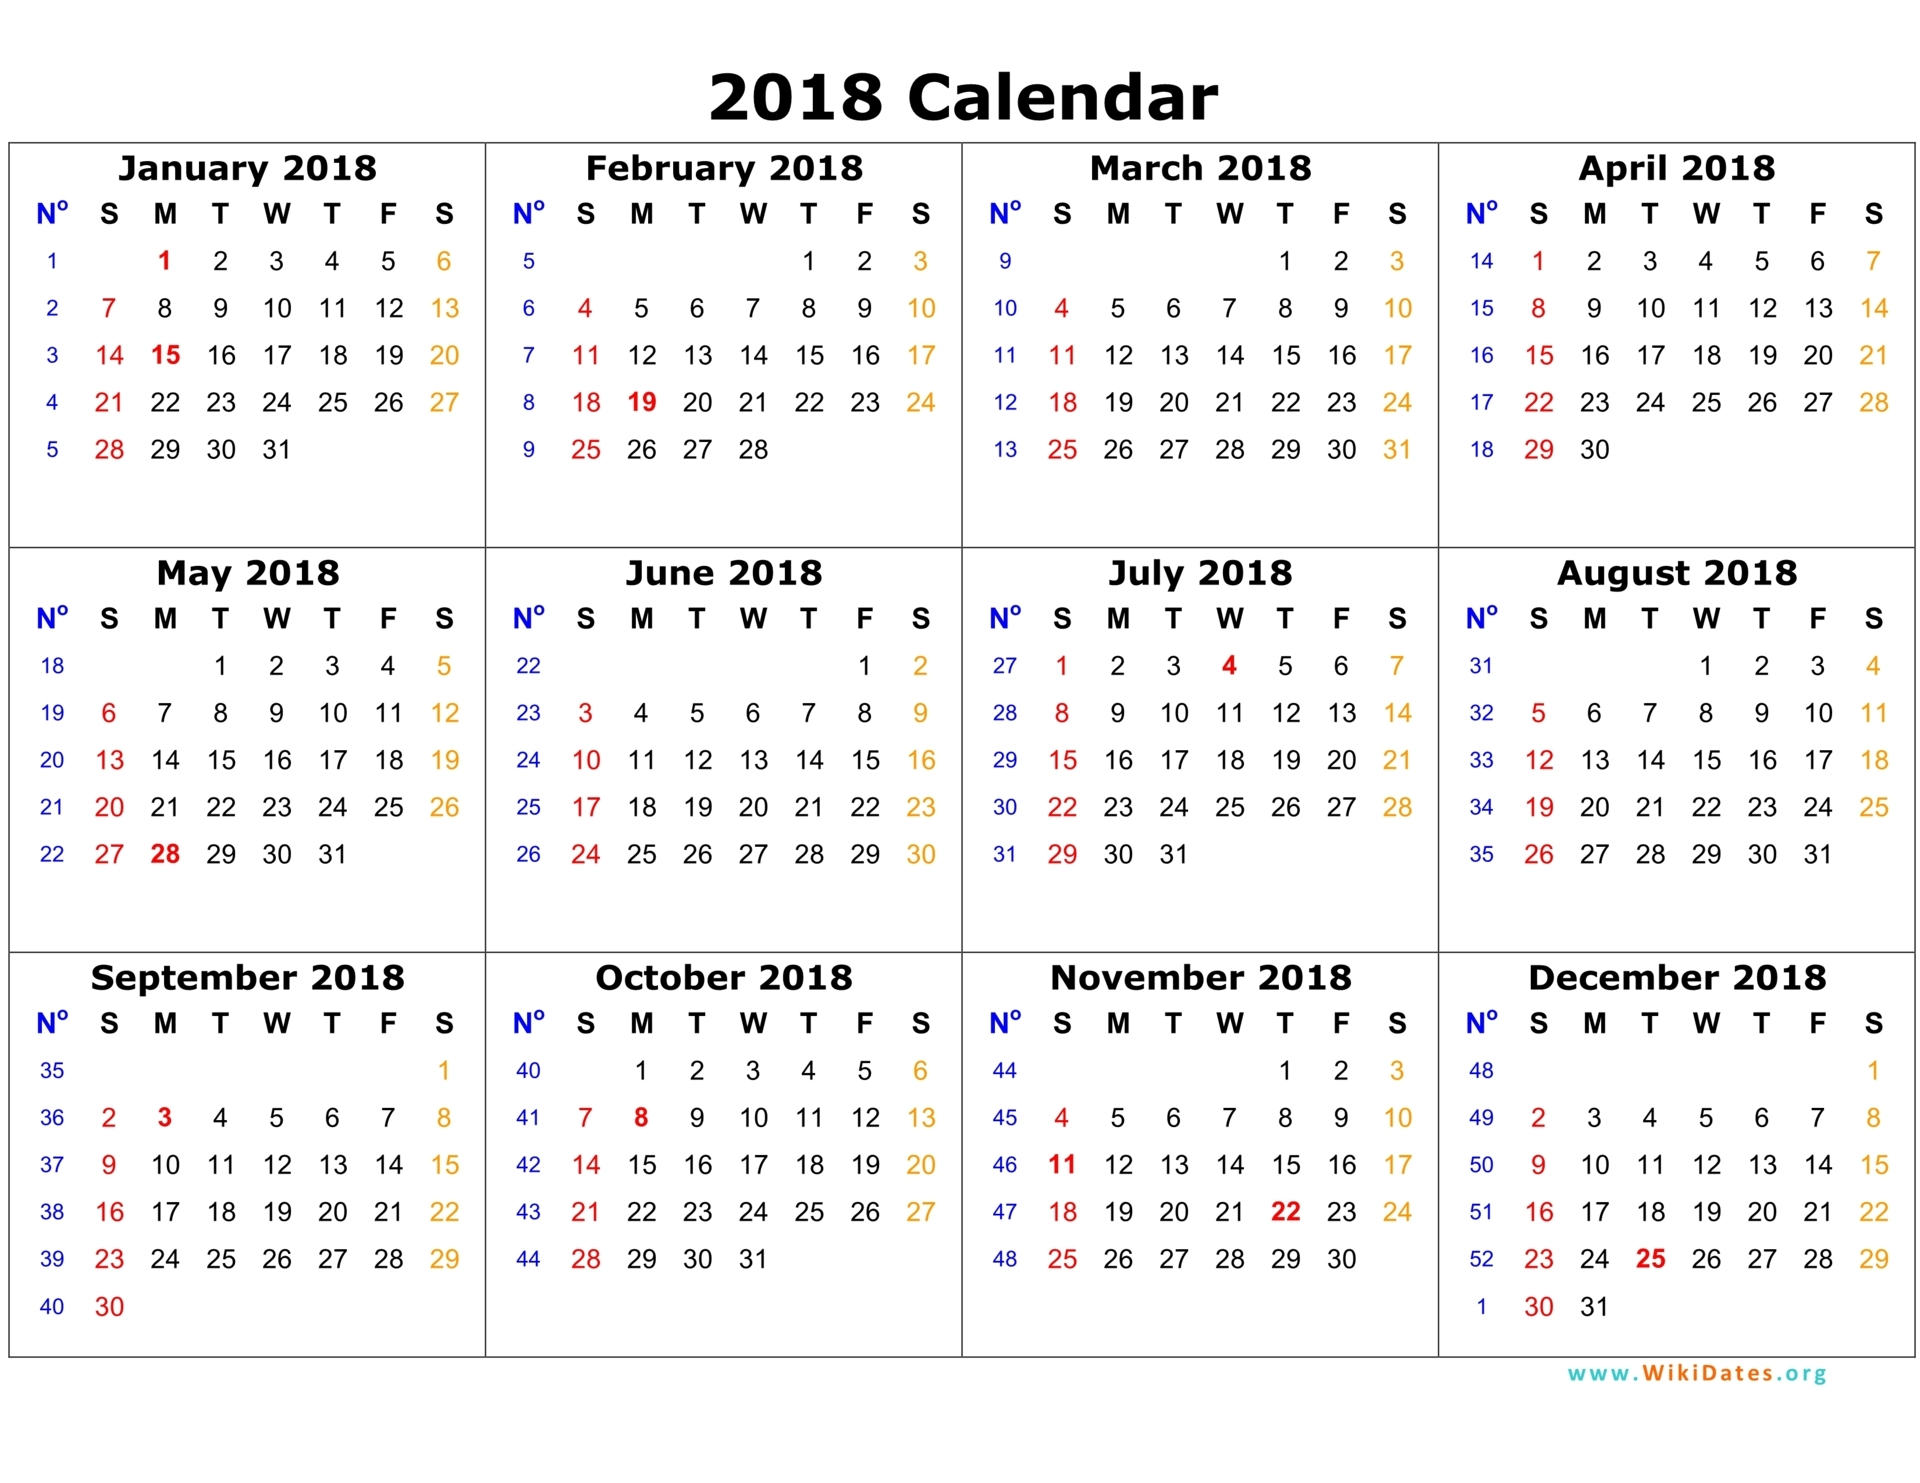 Free 2018 Calendar,2018 Printable Calendar,2018 Calendar Editable,2018 Blank Templates,2018 Calendar with Notes, 2018 Calendar Online Download,2018 calendar free, 2018 calendar pdf,2018 calendar excel, 2018 calendar word, 2018 calendar editable ,2018 calendar with notes, 2018 calendar holidays, 2018 calendar printable, 2018 calendar templates, 2018 calendar blank